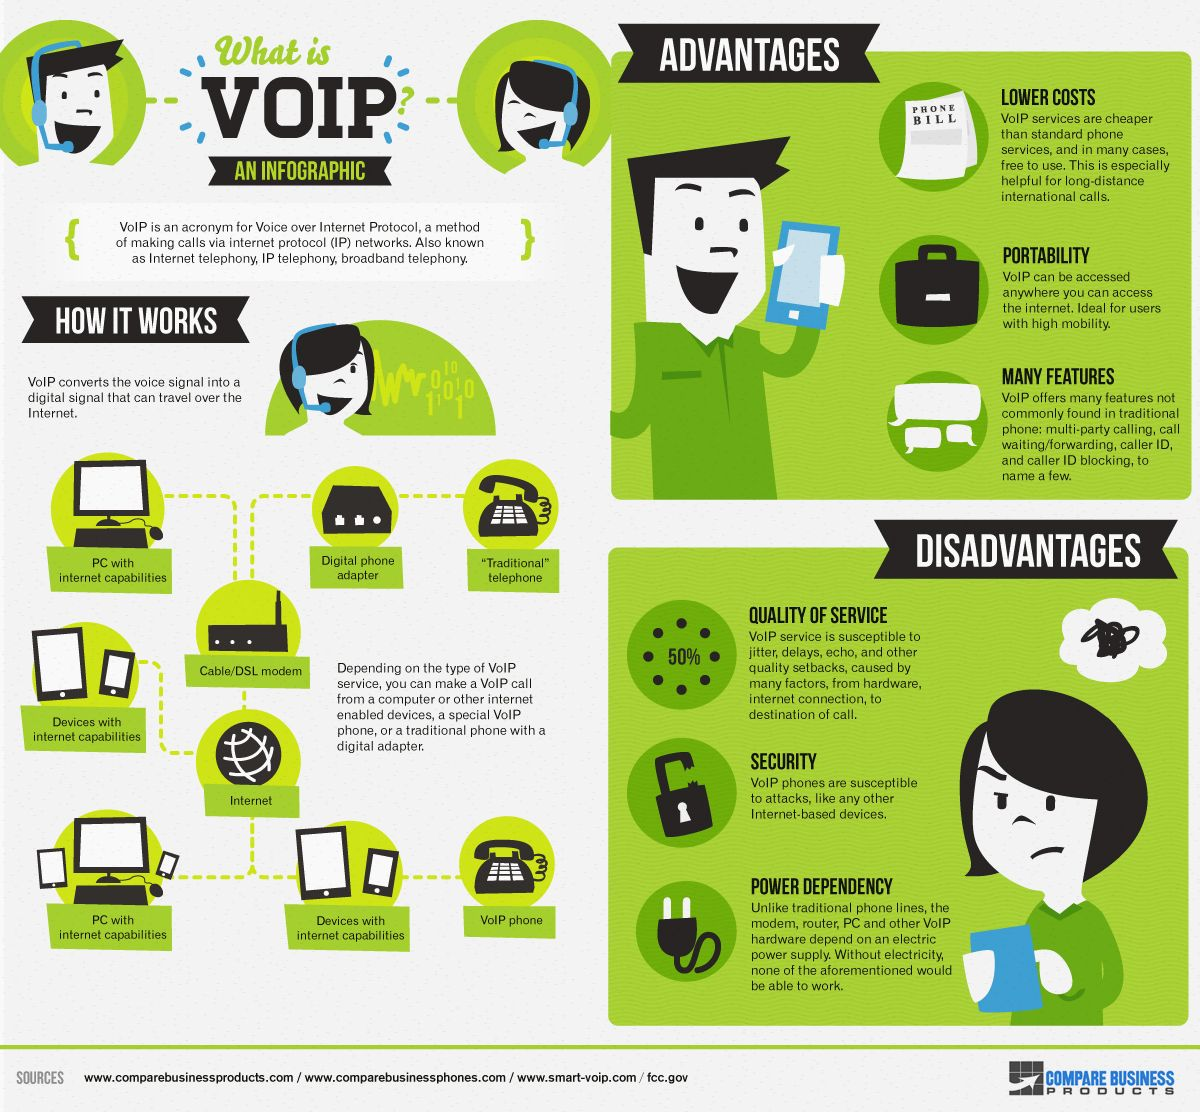 voip advantages and disadvantages What is VoIP? Explain with advantages and disadvantages | Voice Over ...